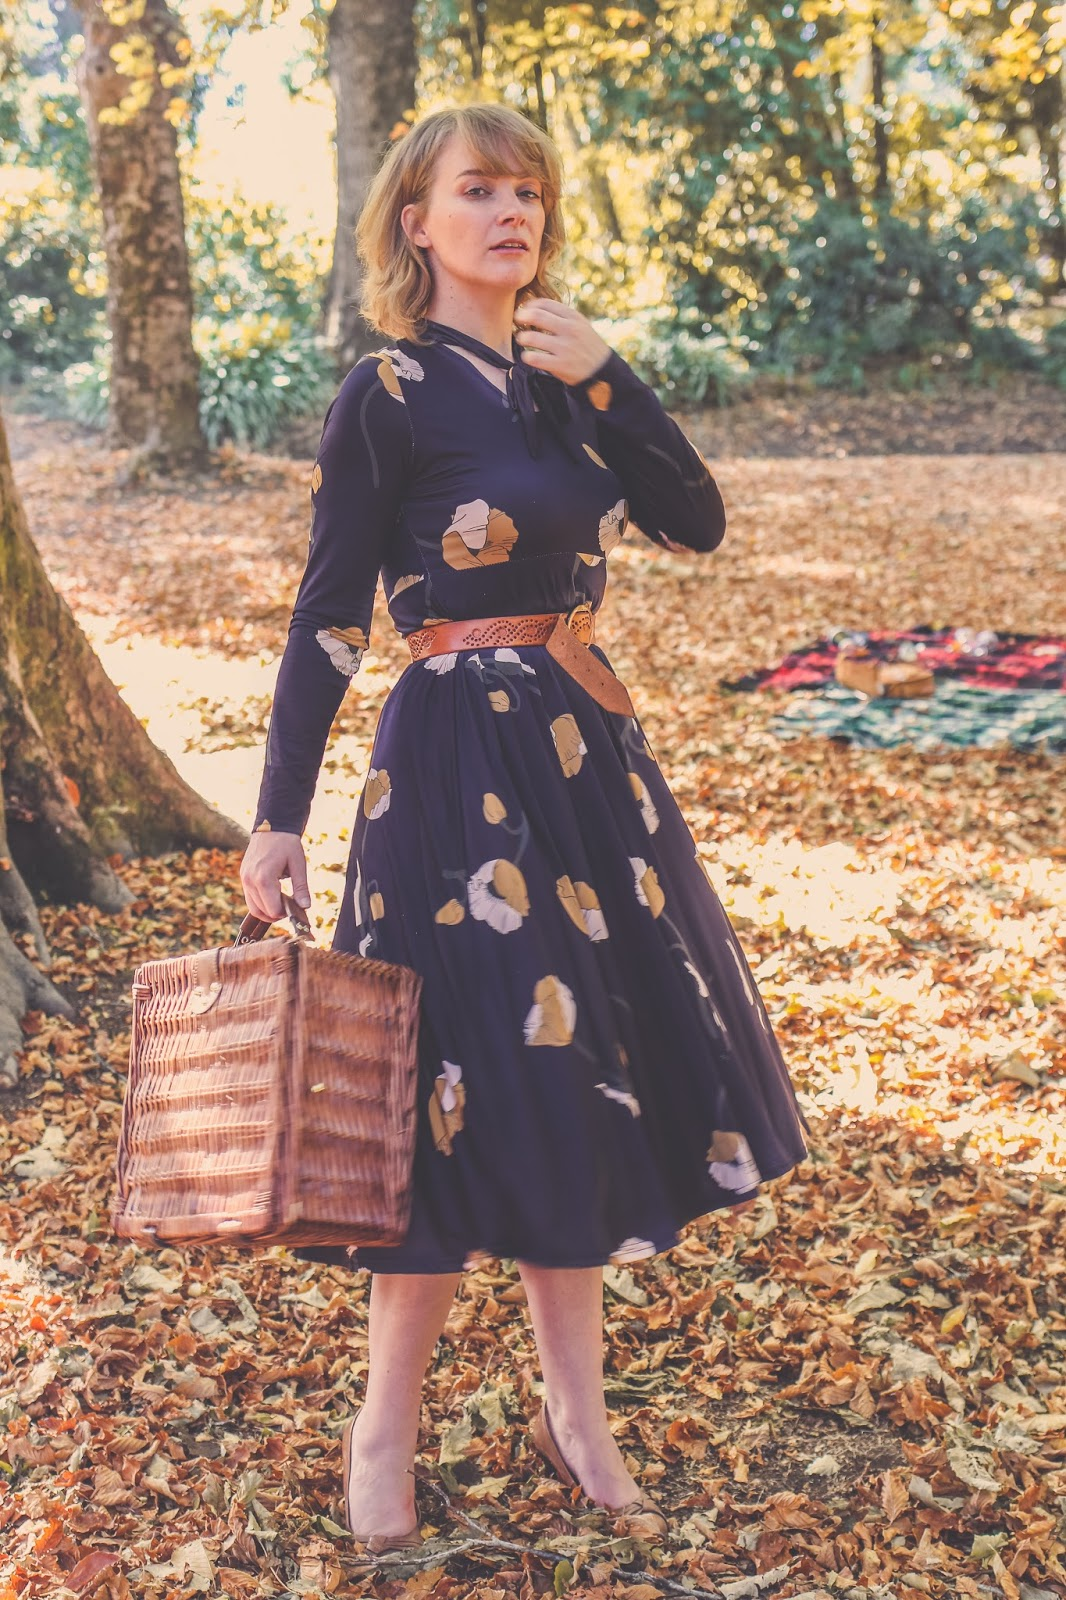 Liana of @findingfemme on an autumn picnic in Daylesford